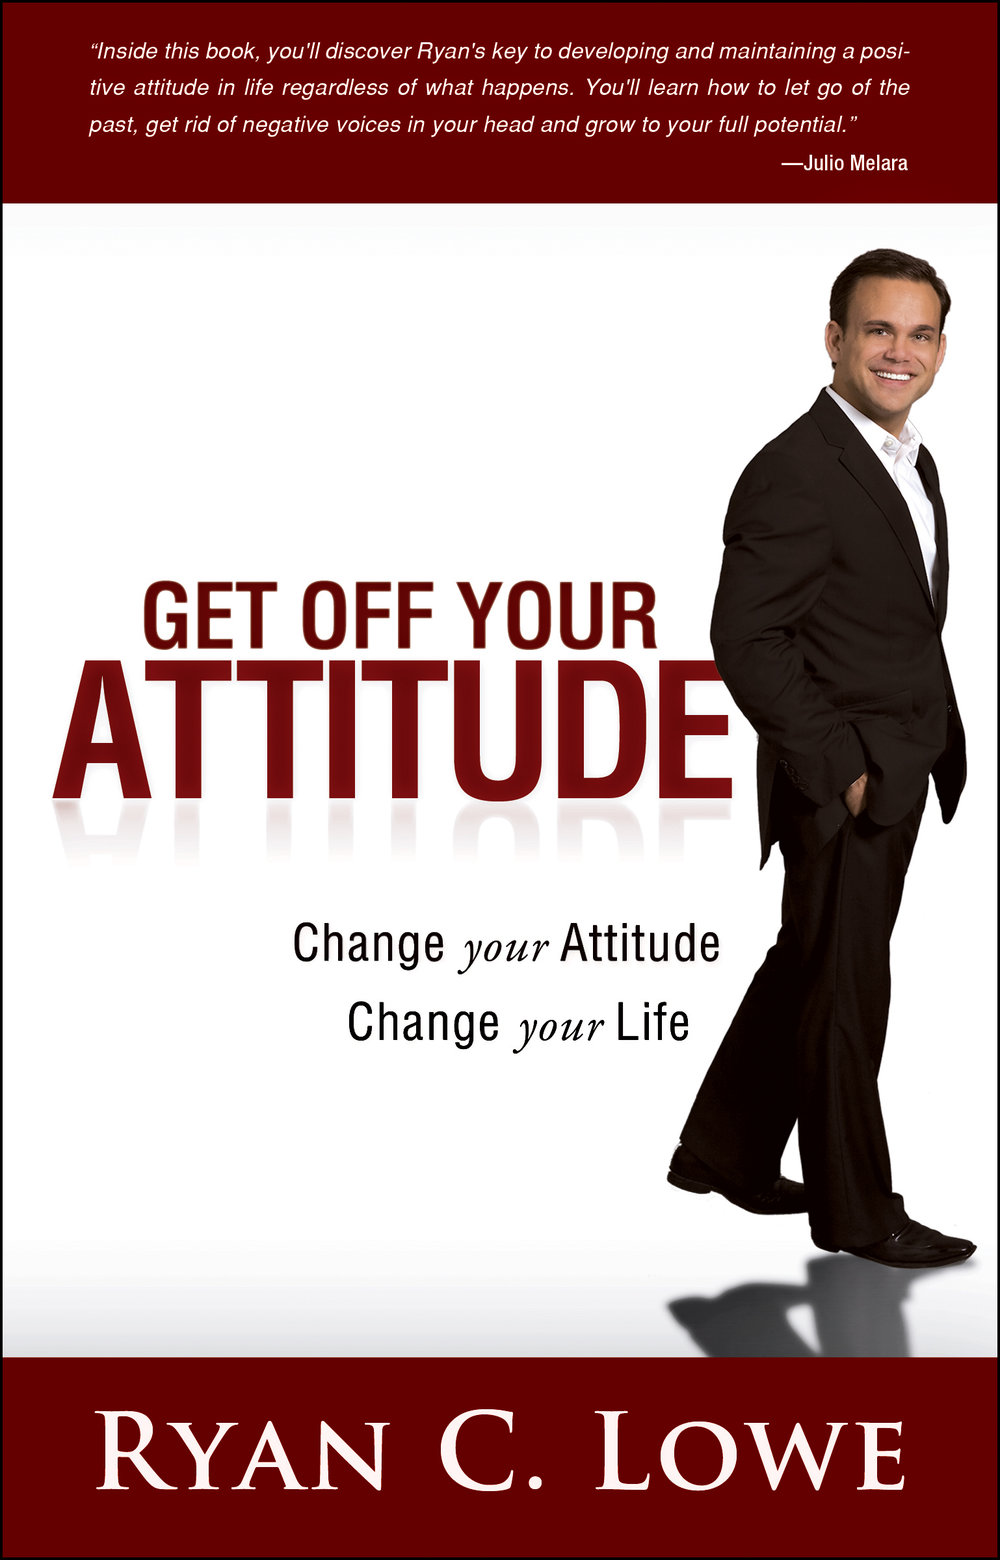 Get Off Your Attitude - Ryan C. Lowe